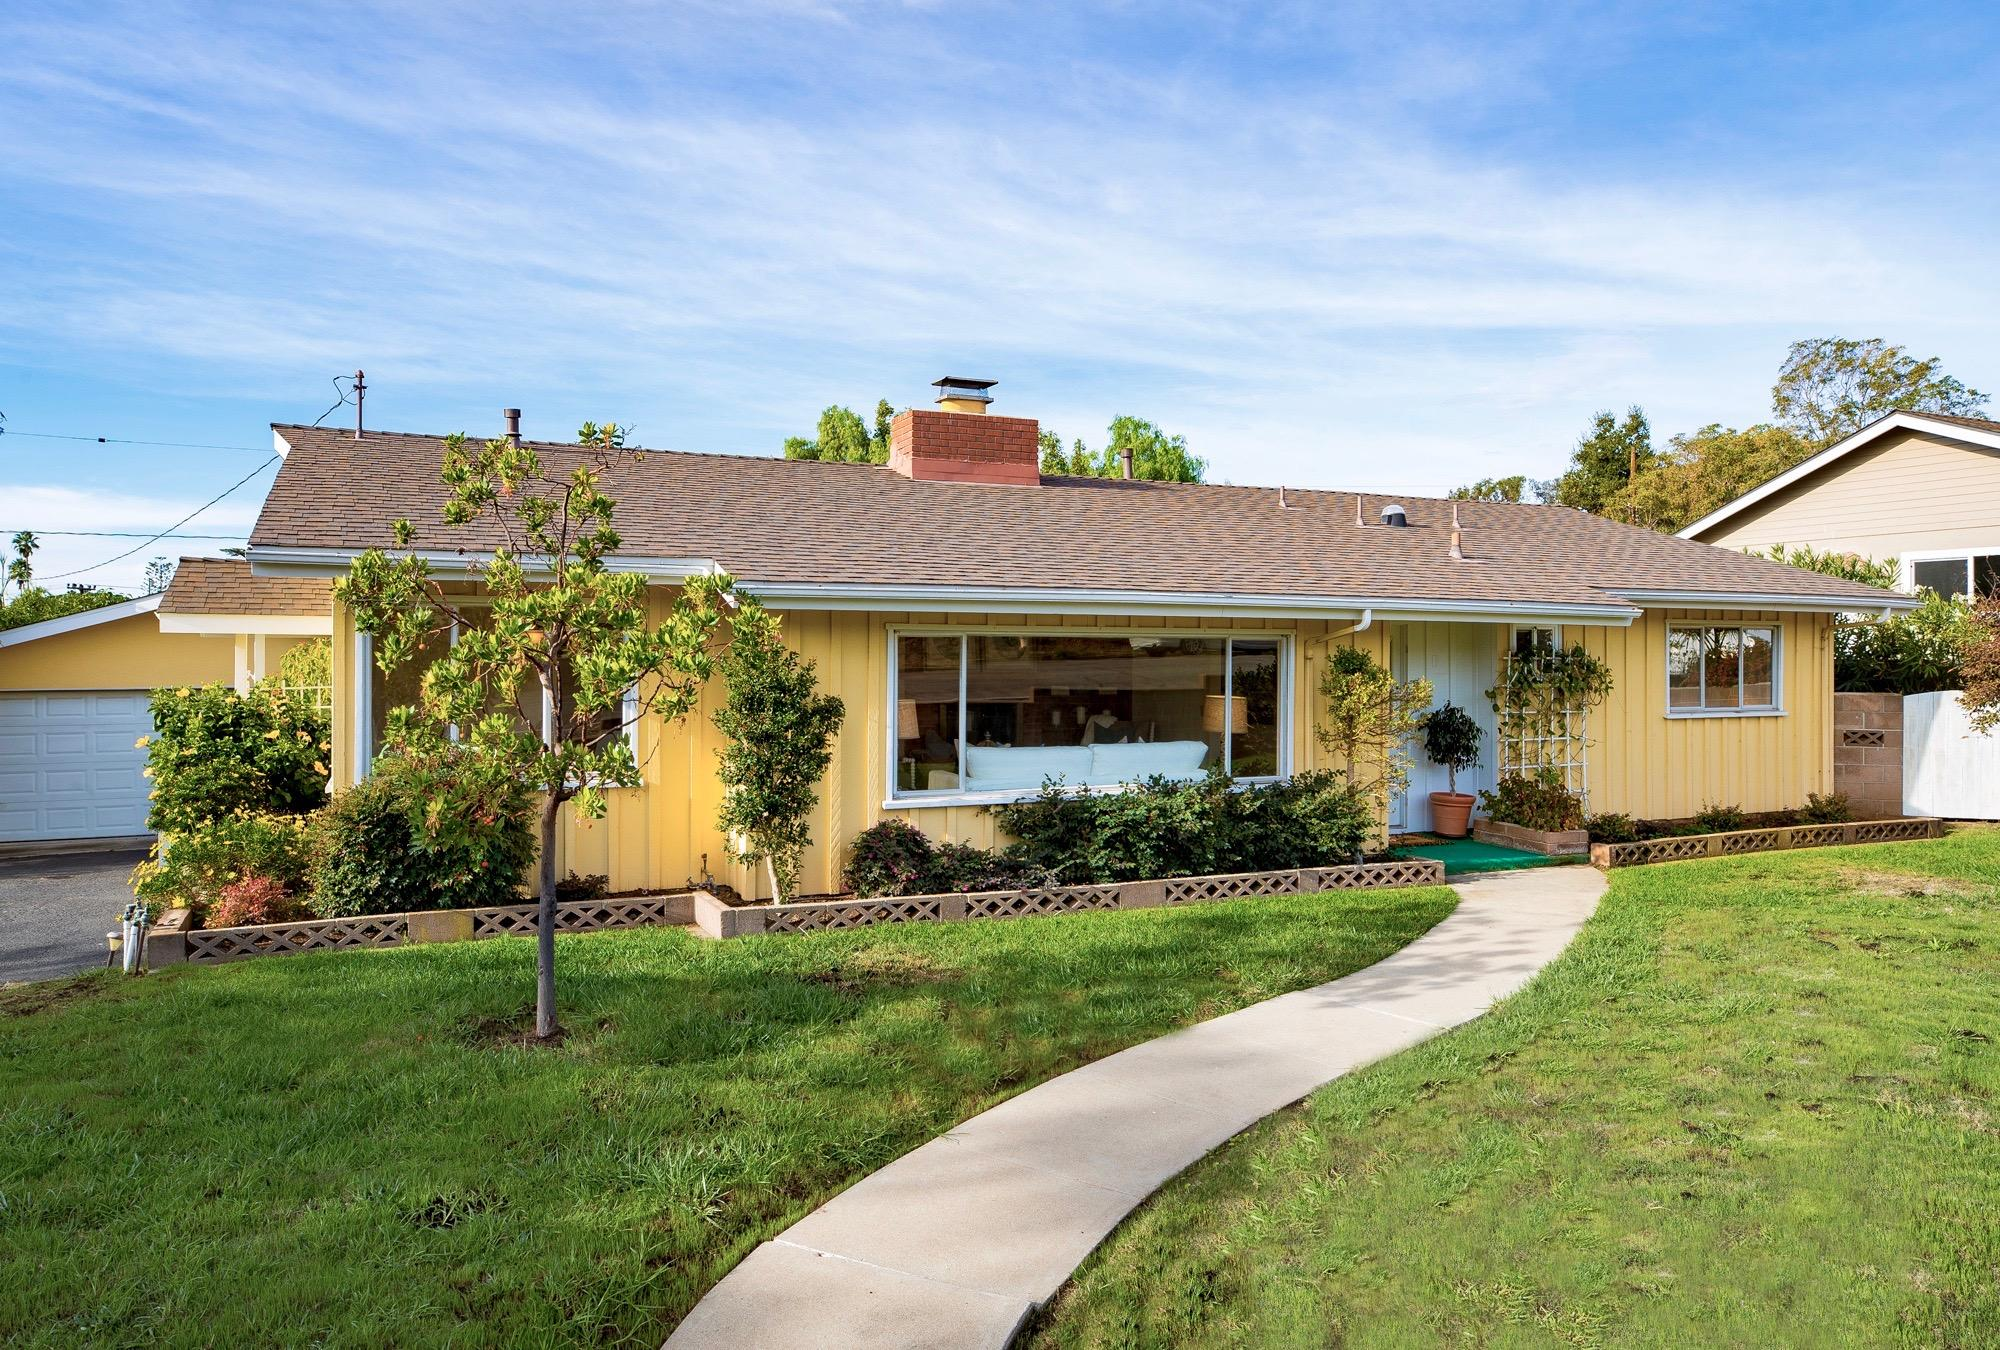 Property photo for 485 Los Verdes Dr Santa Barbara, California 93111 - 17-3866